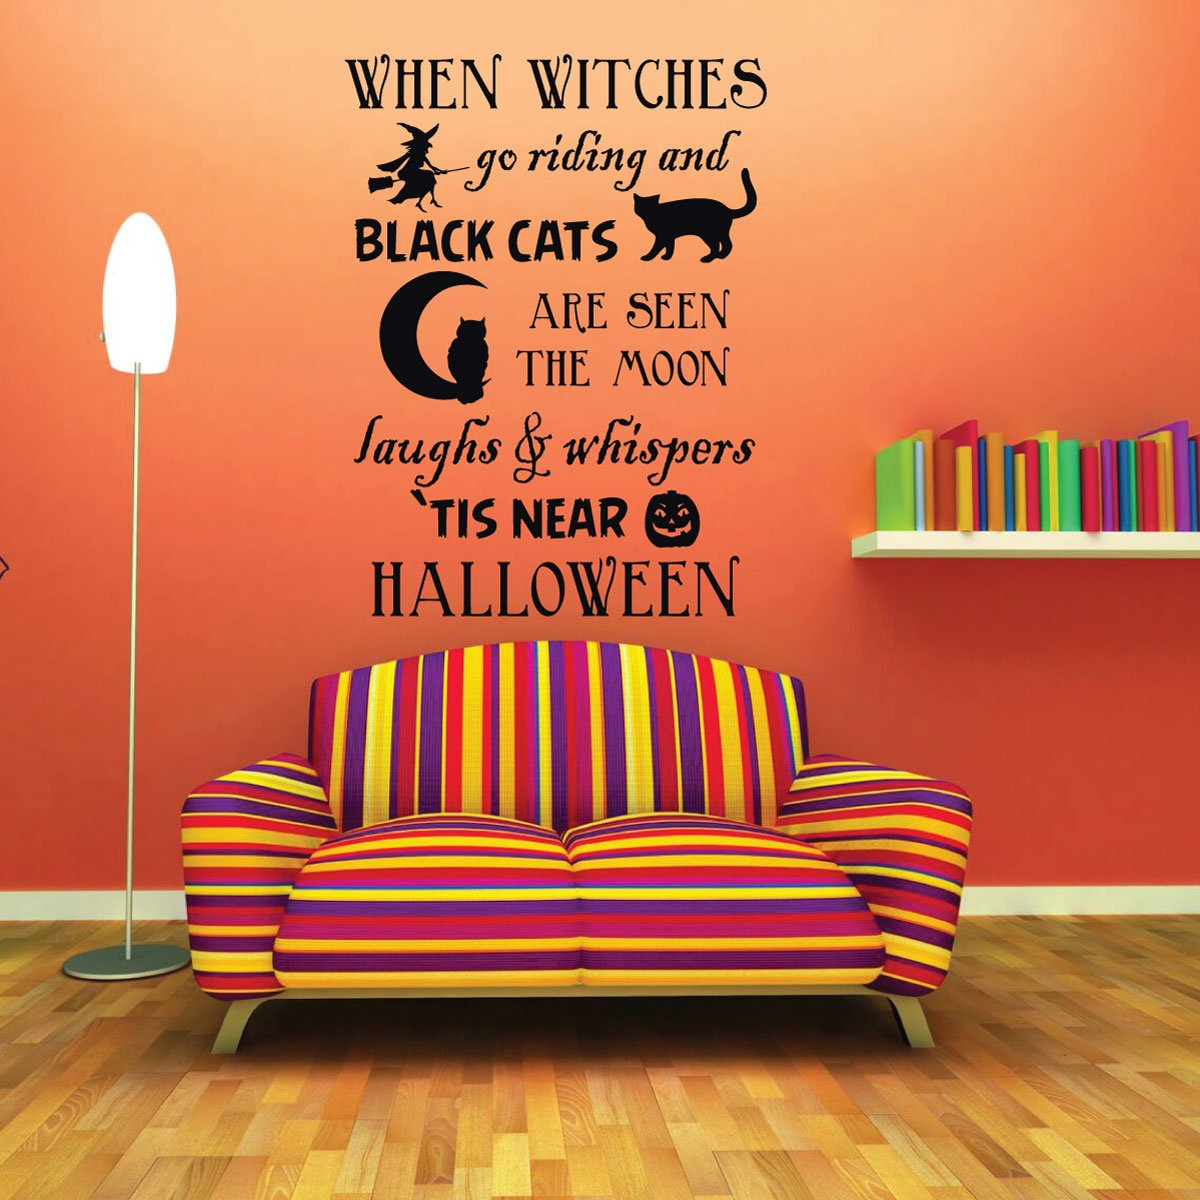 Spooky Witches and Black Cats Halloween Decorations Vinyl Decor Wall Decal